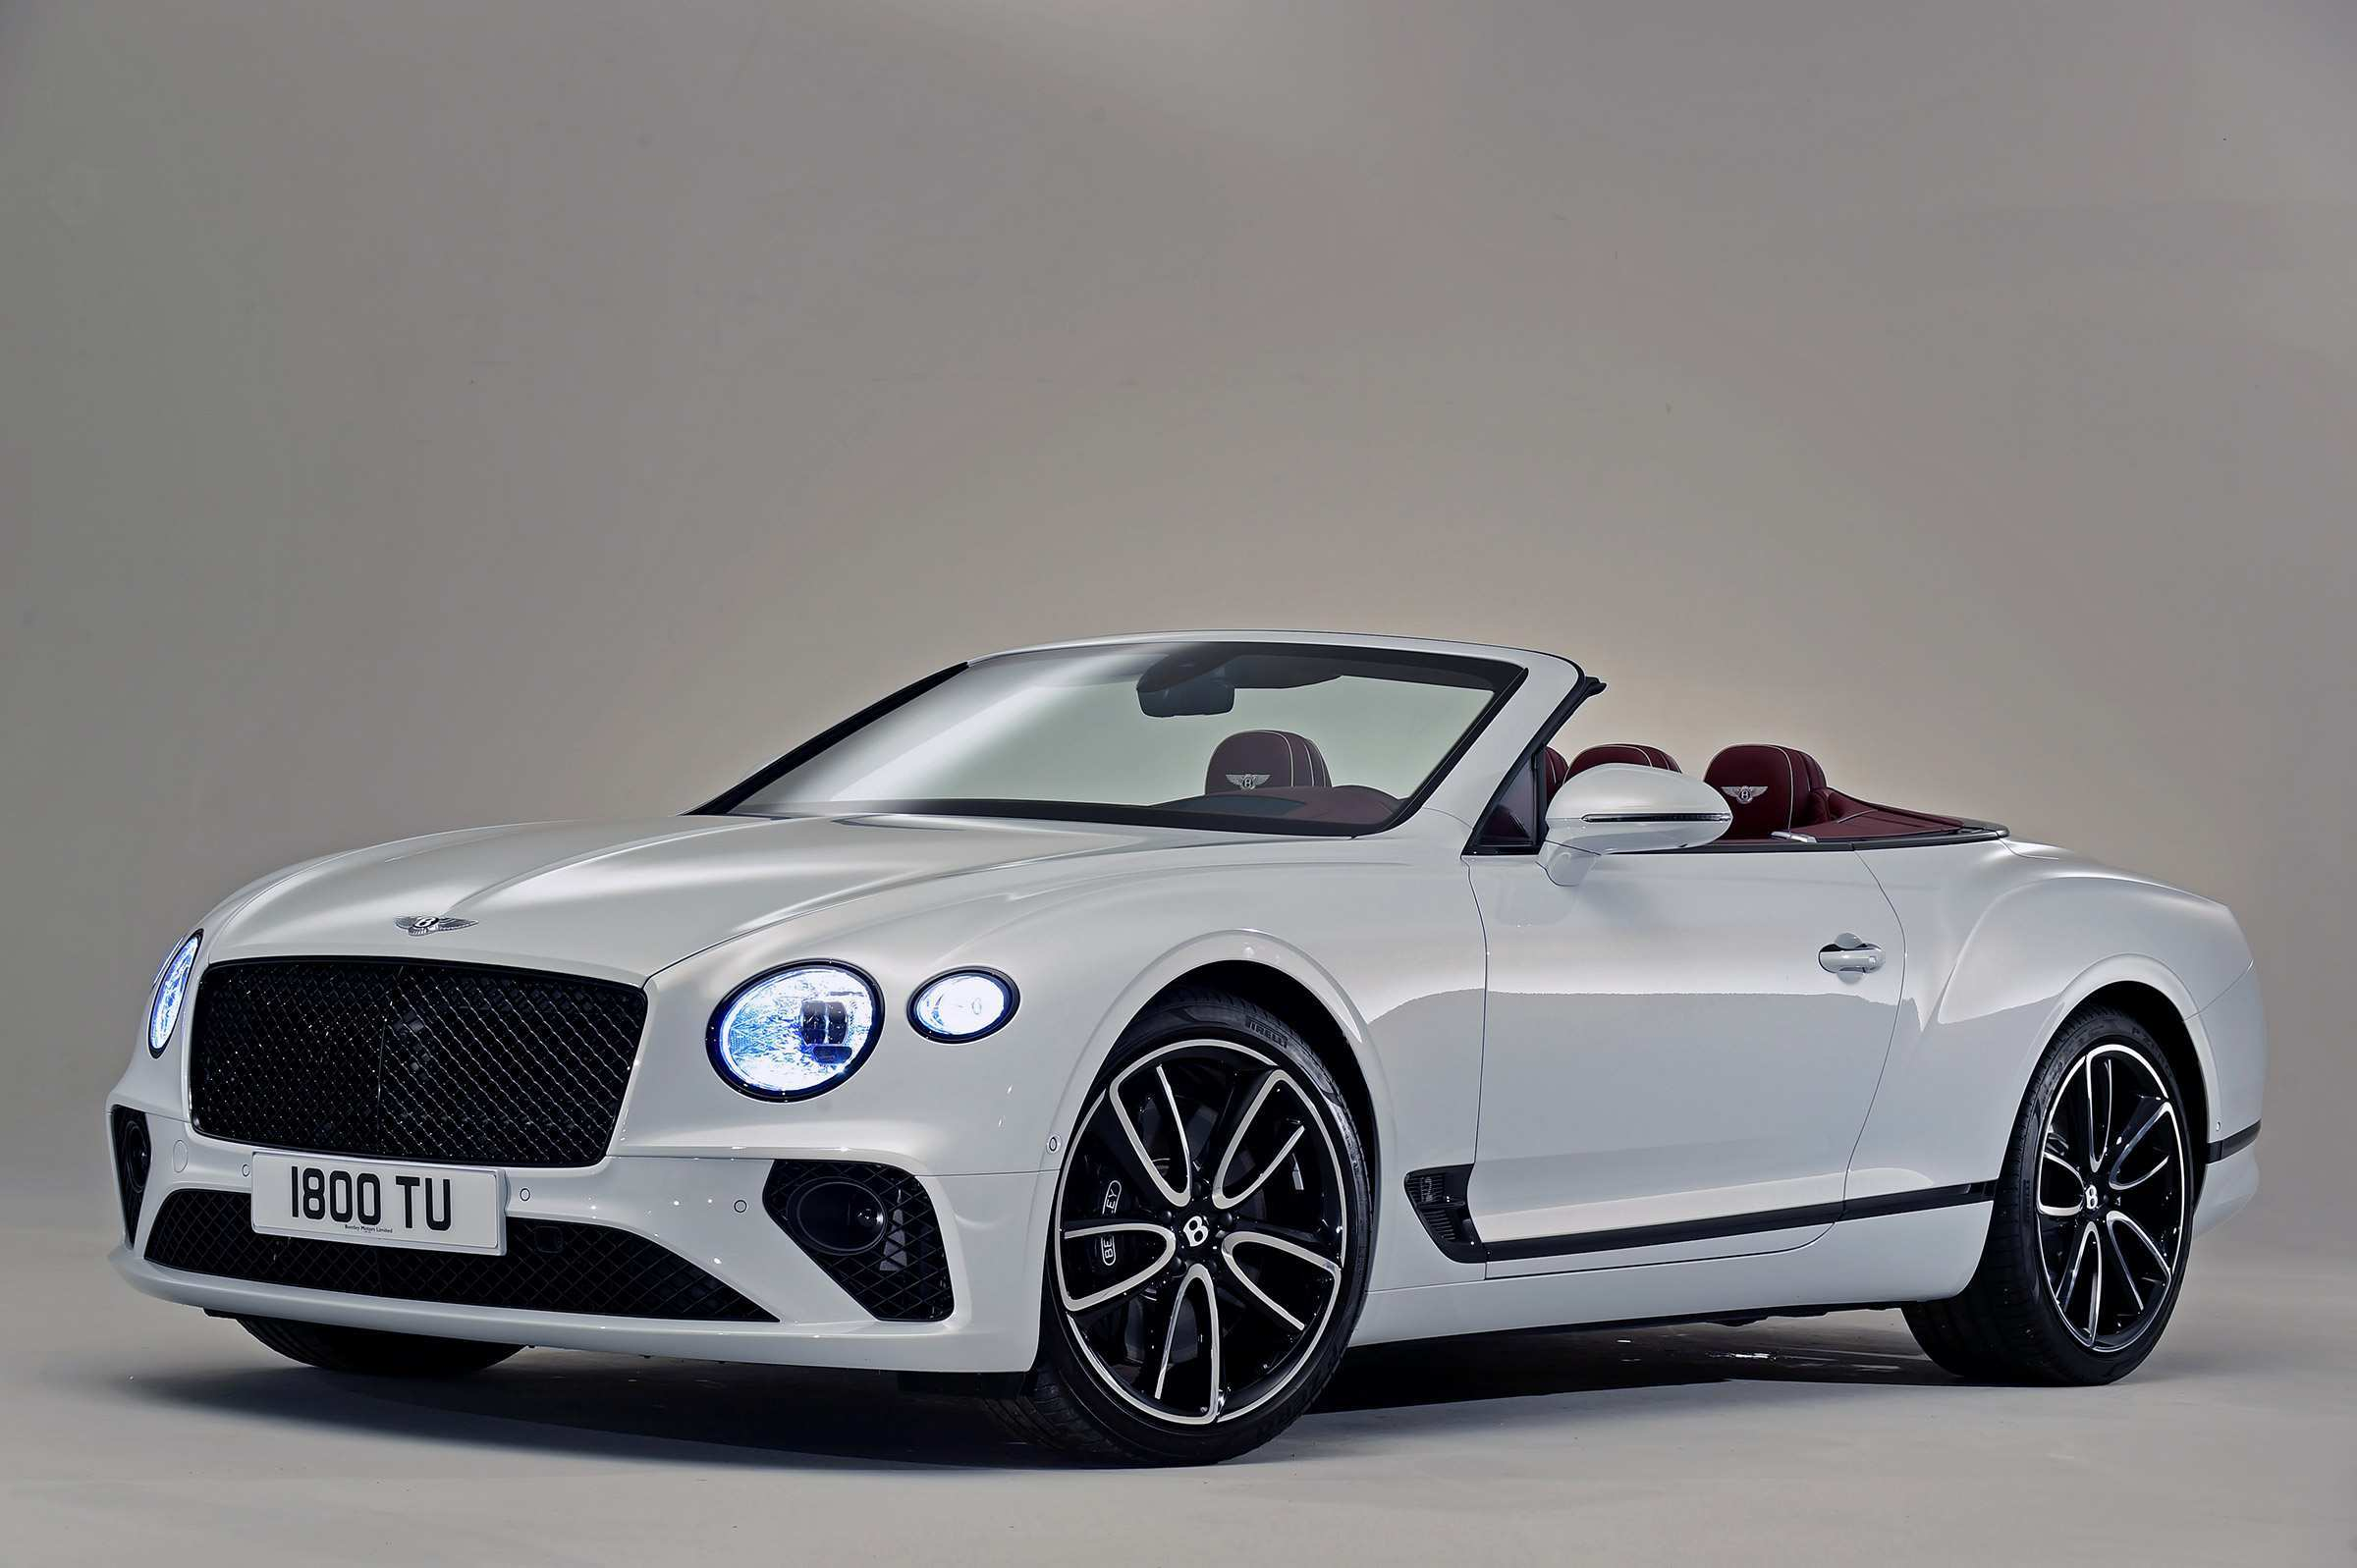 52 The 2019 Bentley Continental Gt V8 Overview by 2019 Bentley Continental Gt V8